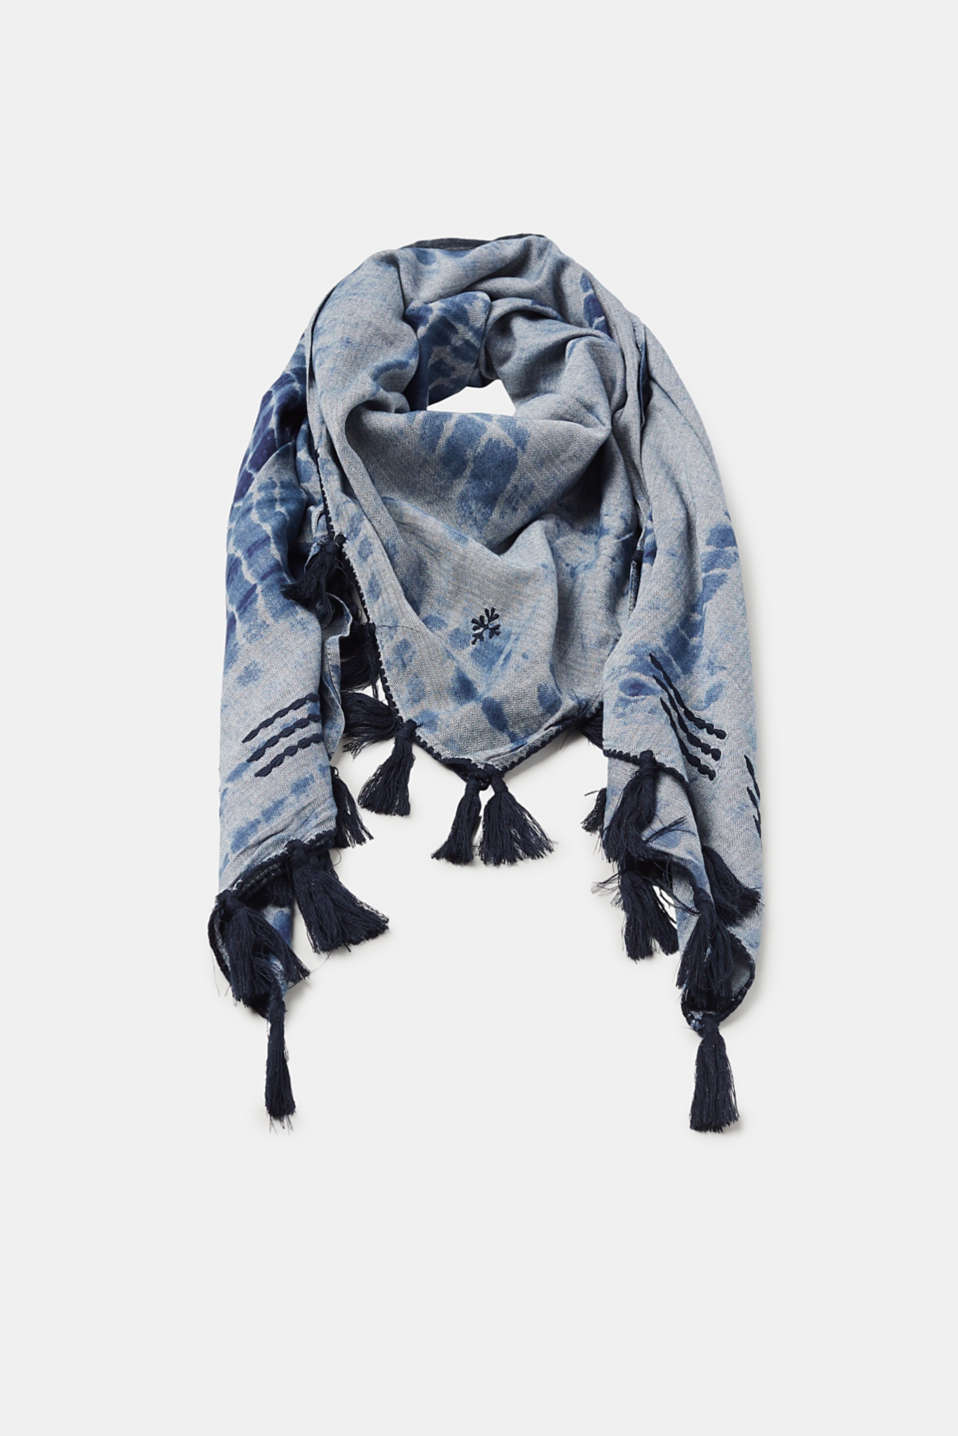 Esprit - Batik scarf with tassels, 100% cotton